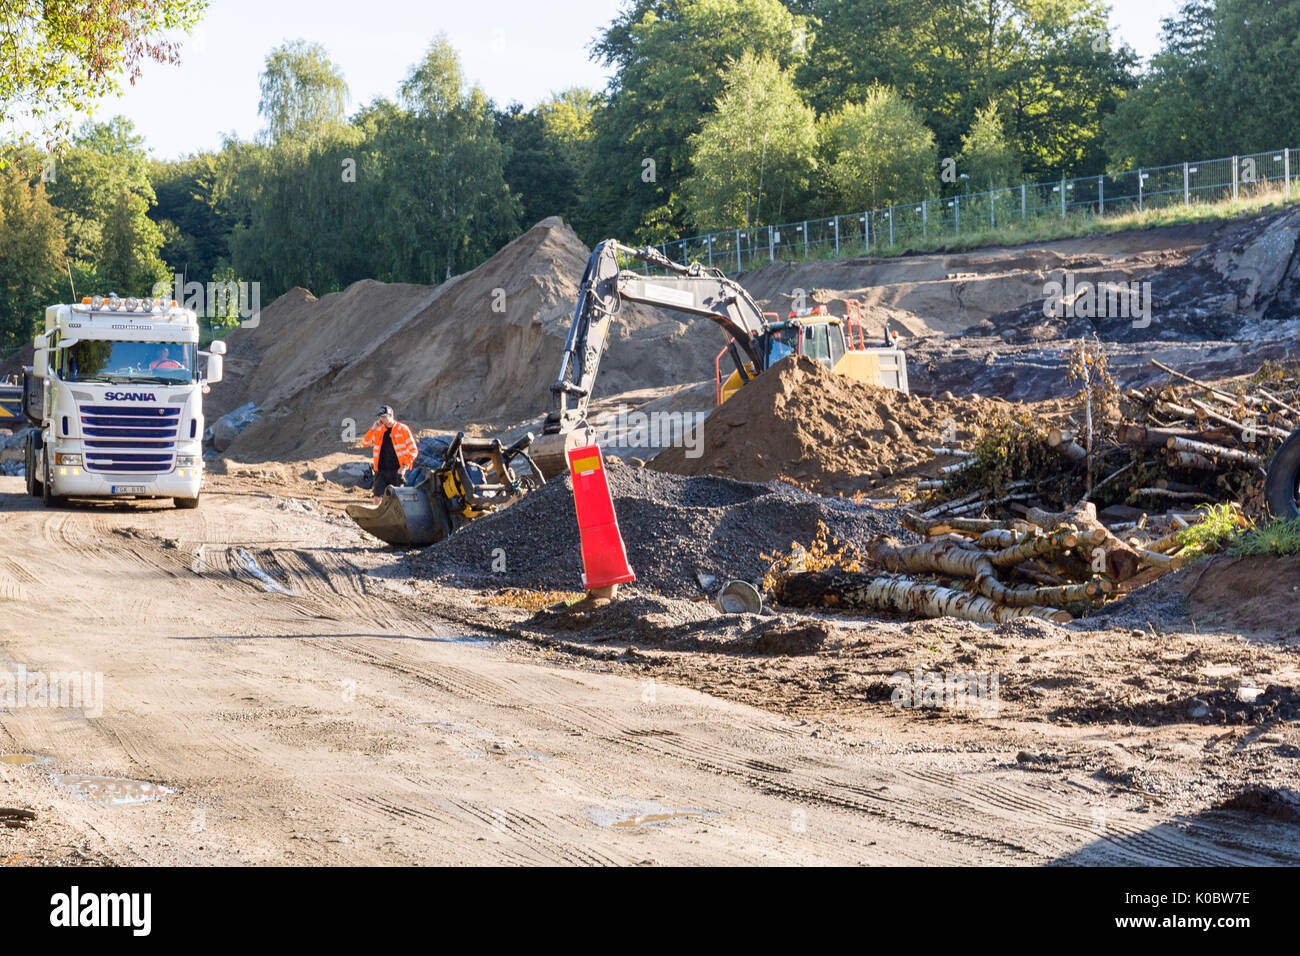 Heavy duty excavators at building site digging and loading trucks lorries with topsoil ahead of construction  Model Release: No.  Property Release: No. - Stock Image